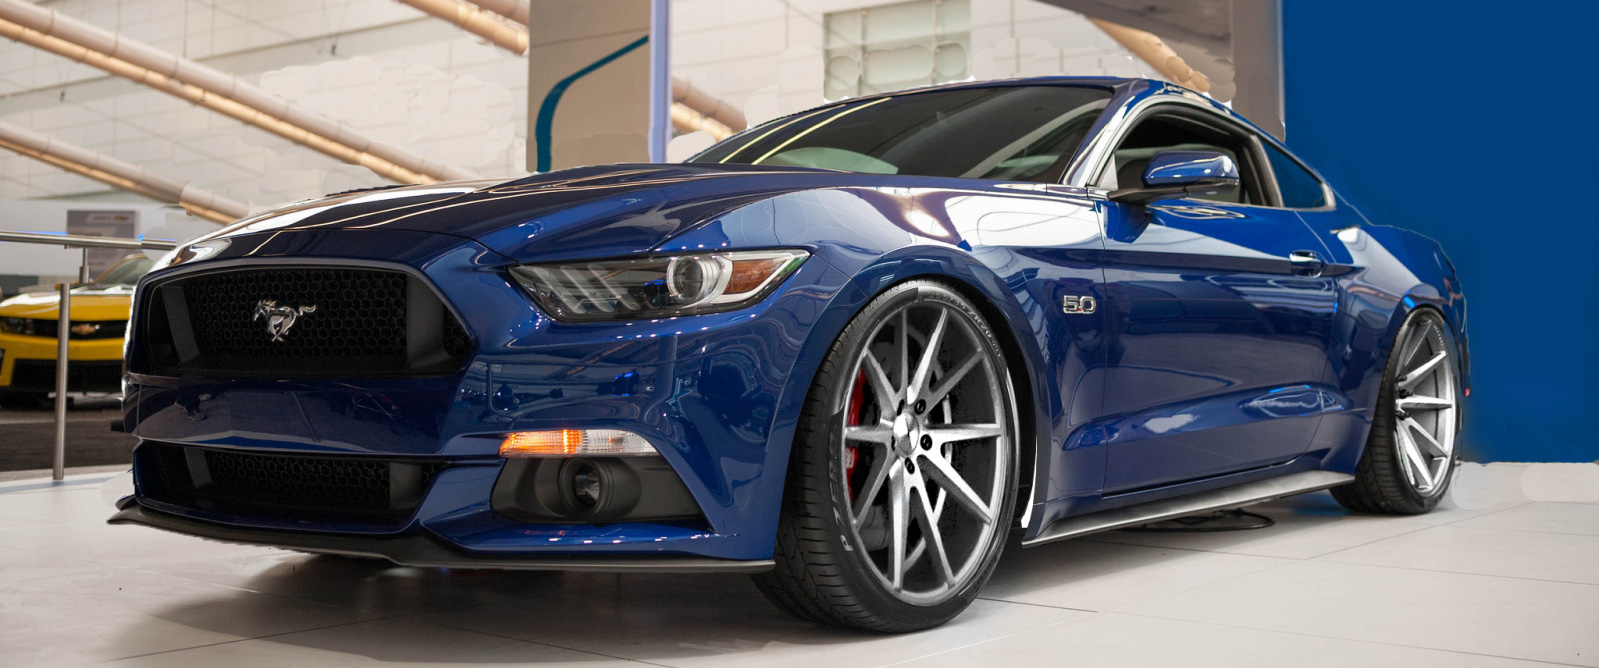 2015 Blue Ford Mustang Twin Turbo